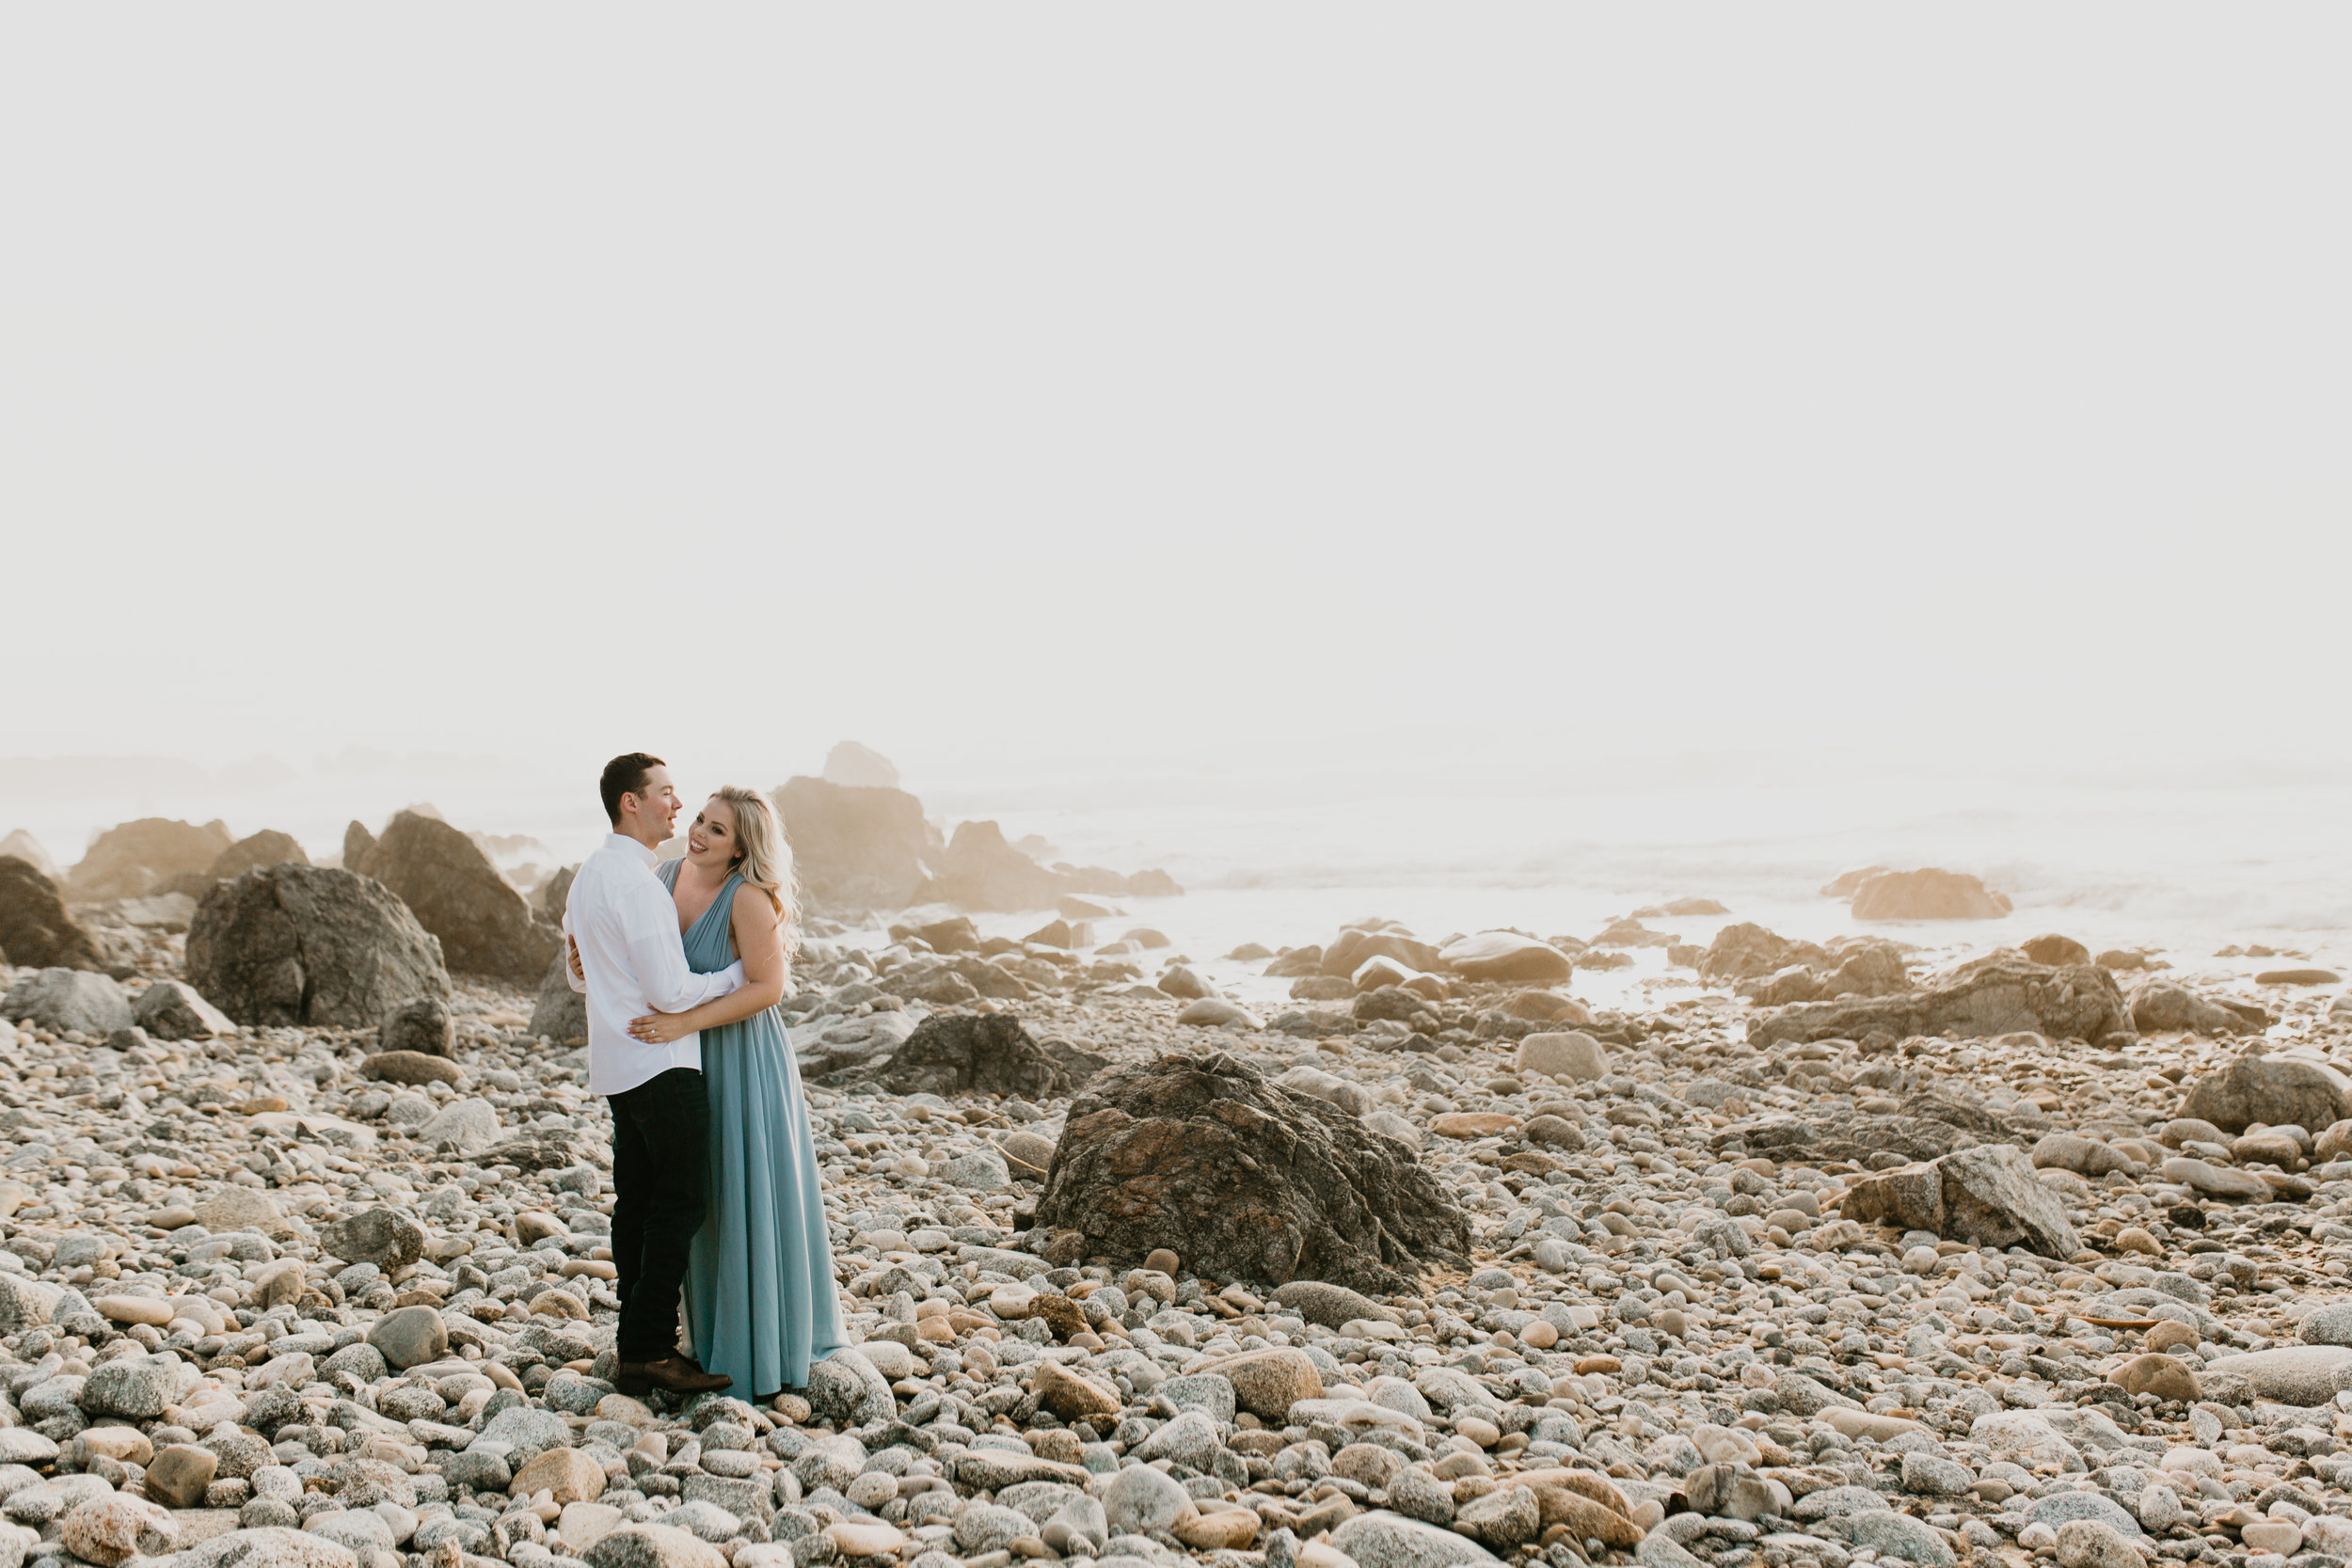 Nicole-Daacke-Photography-big-sur-garrapatta-state-park-adventurous-engagement-session-bixy-bridge-elopement-big-sur-wedding-photographer-monterey-elopement-photographer-california-golden-sunset-coast-photos-35.jpg